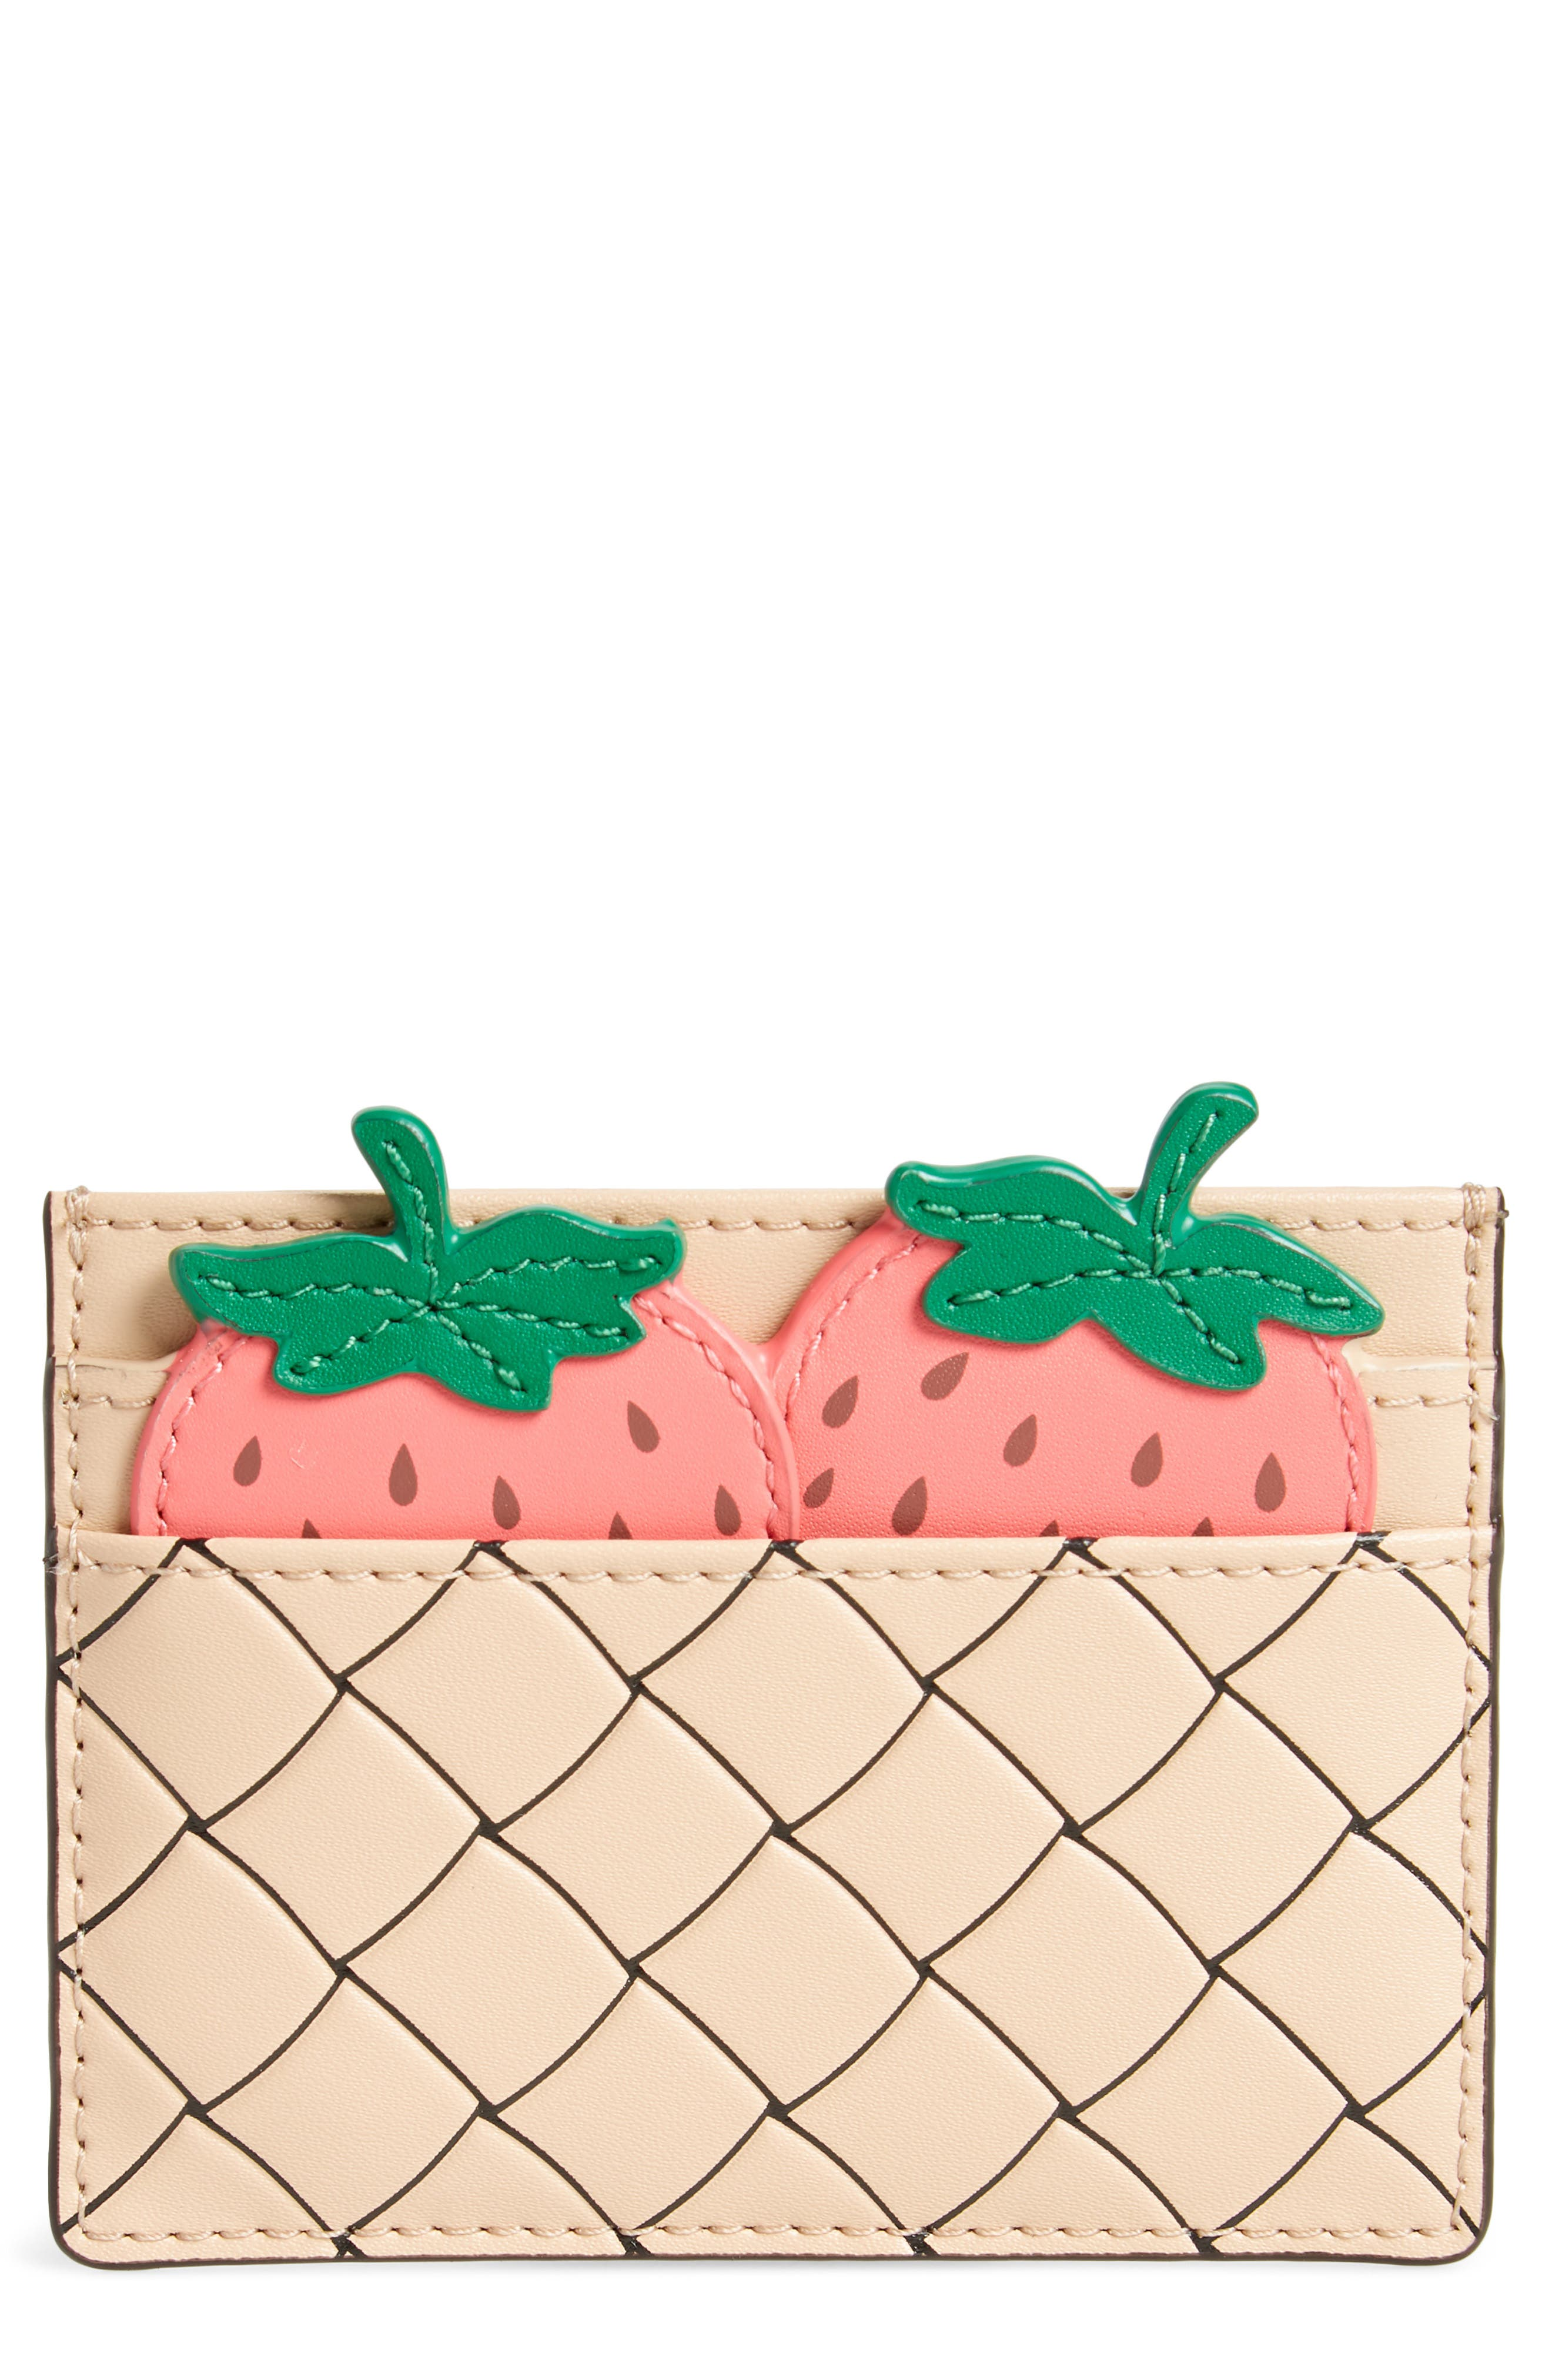 picnic strawberry basket leather card holder,                             Main thumbnail 1, color,                             Multi